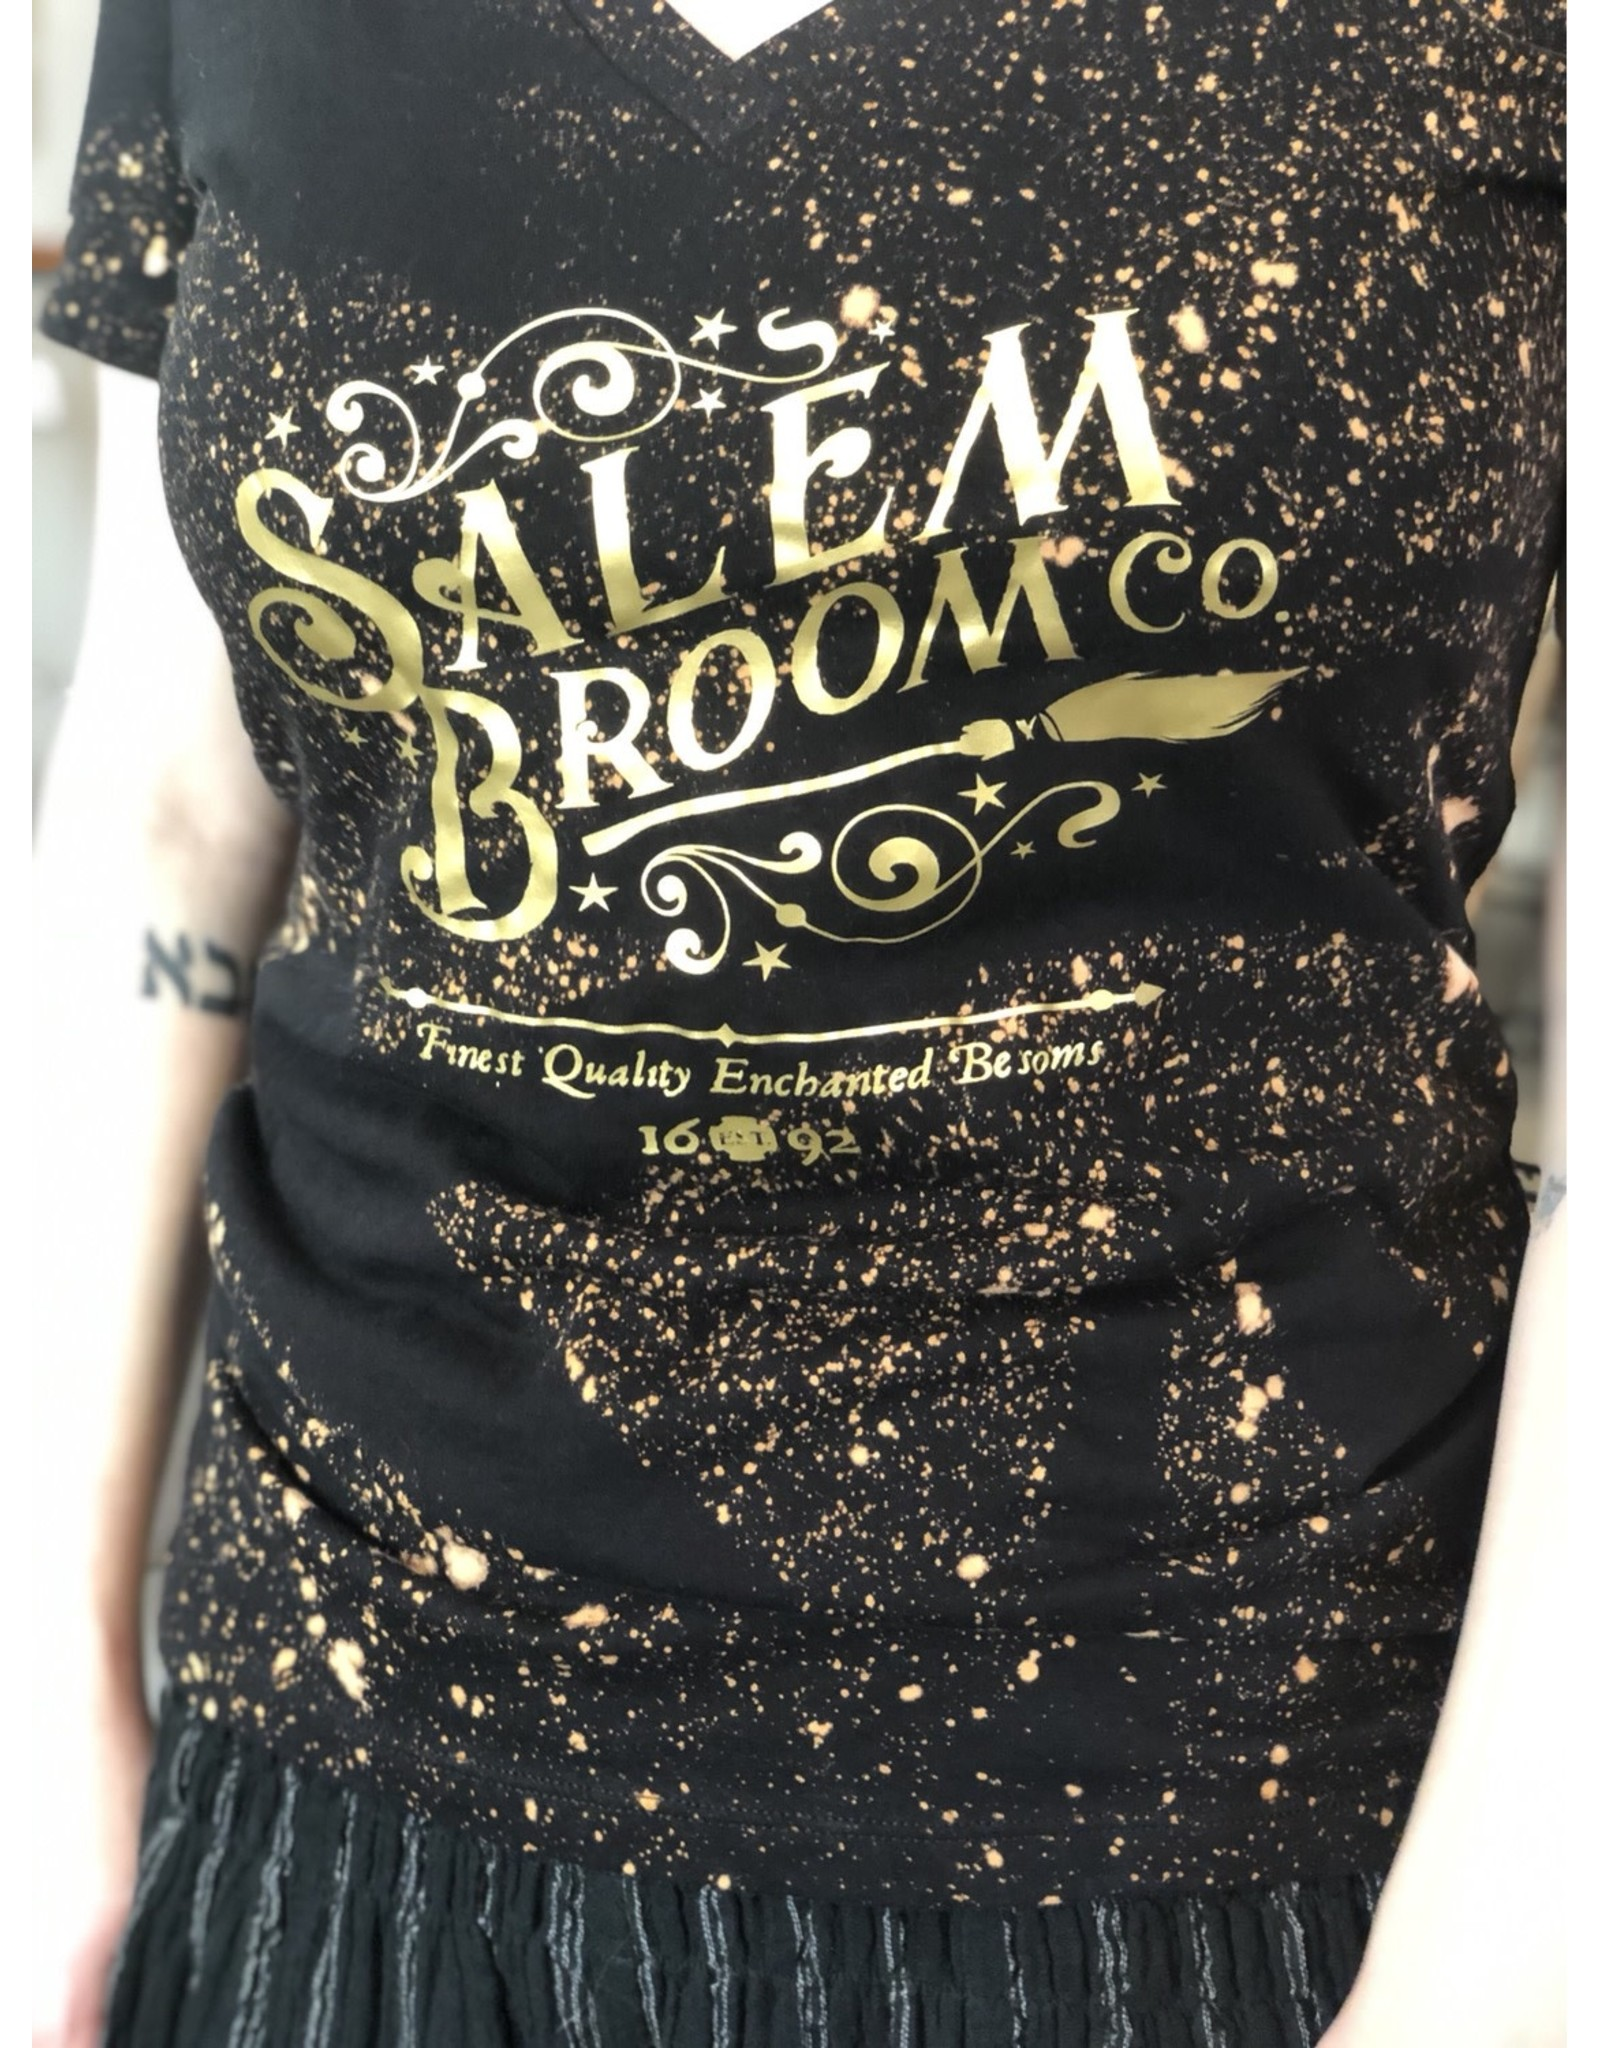 Salem Broom Co T-shirt Medium